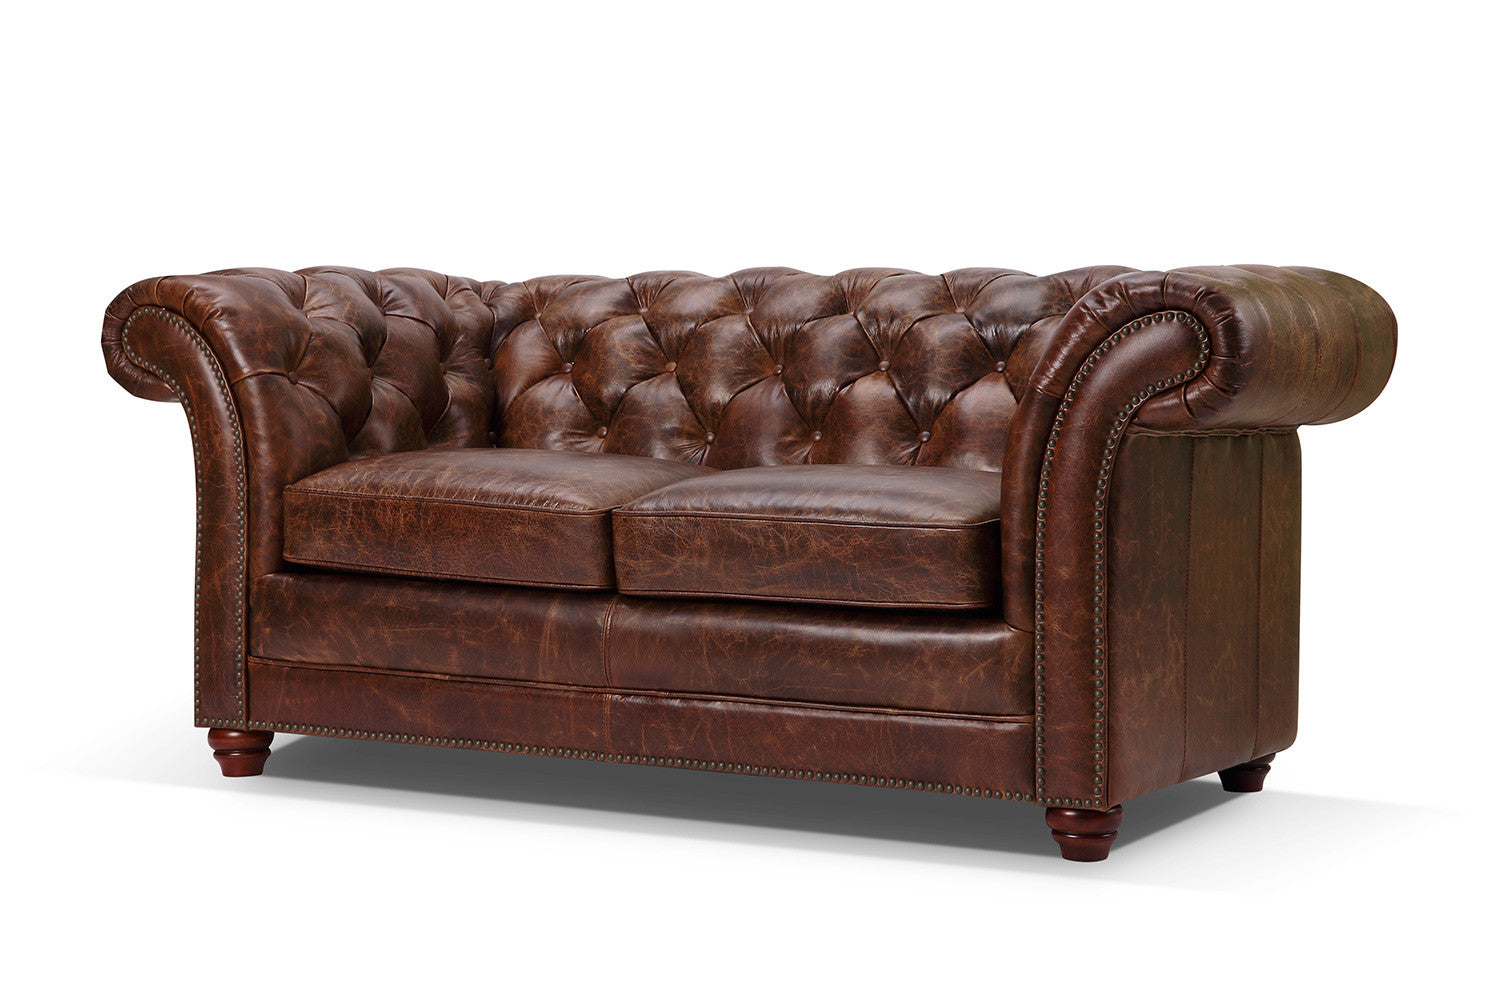 Canap chesterfield en cuir westminster 2 places rose for Chesterfield canape